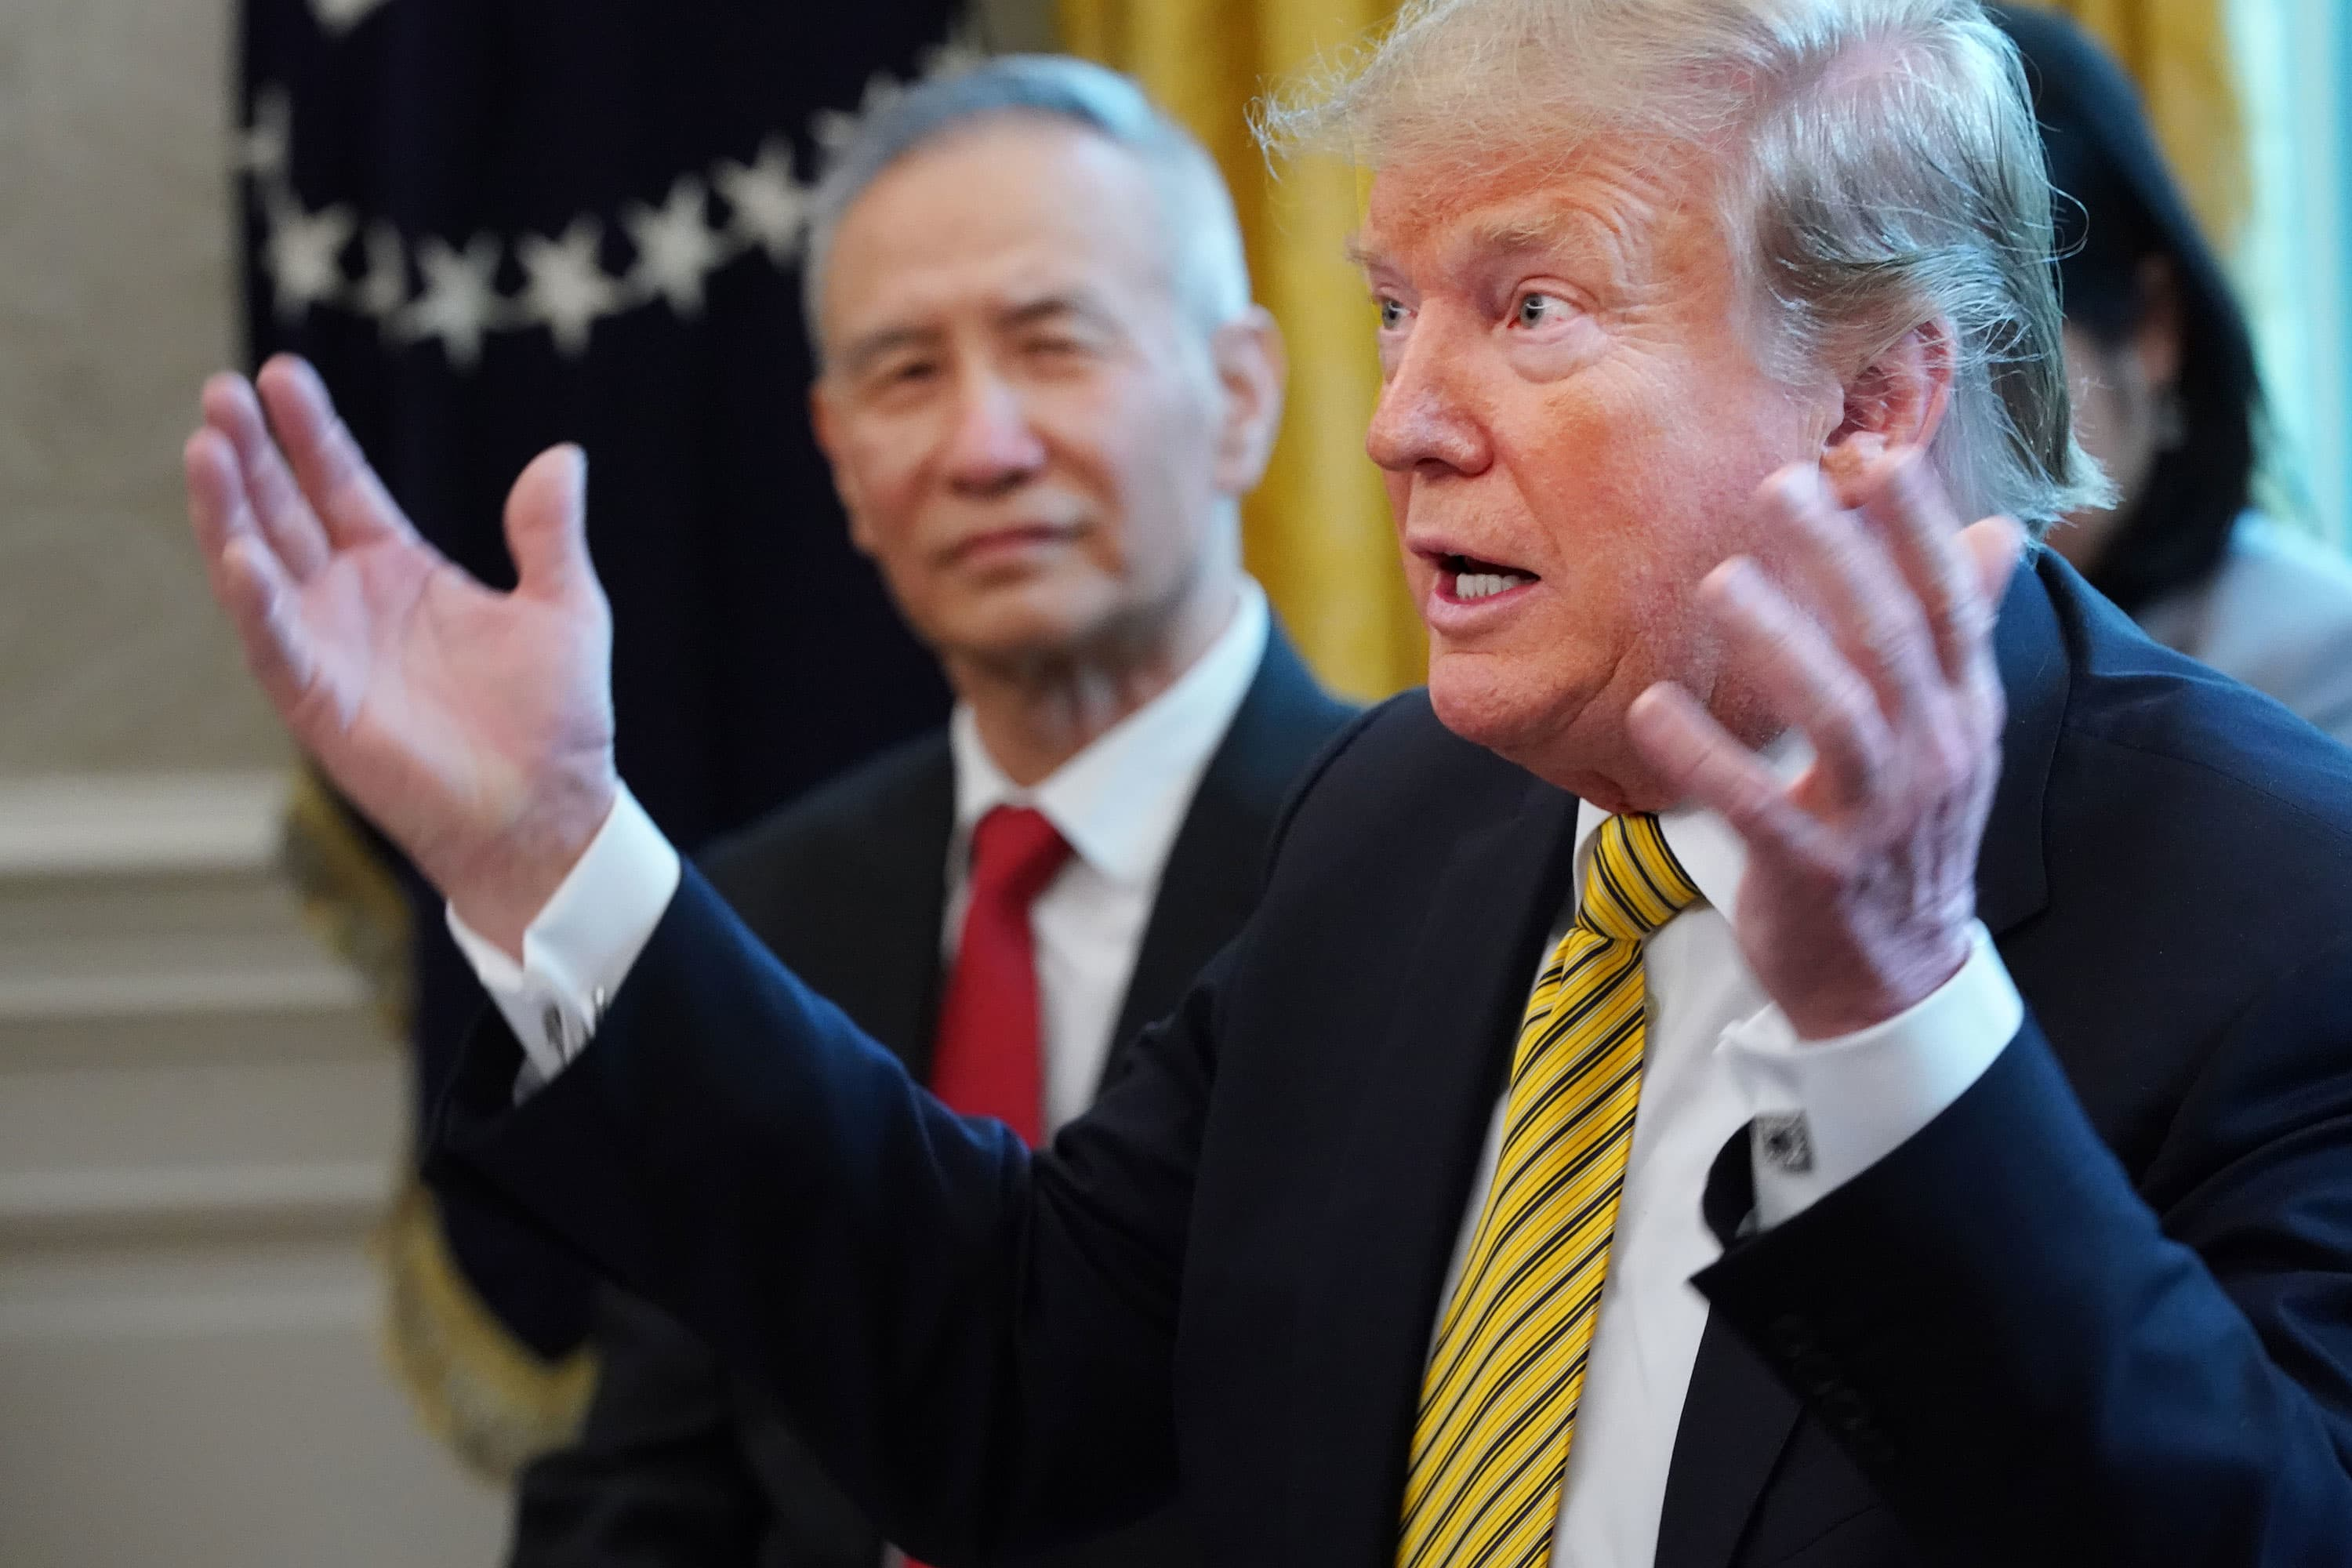 China says it's still preparing for US trade talks — but won't give details after new Trump threats